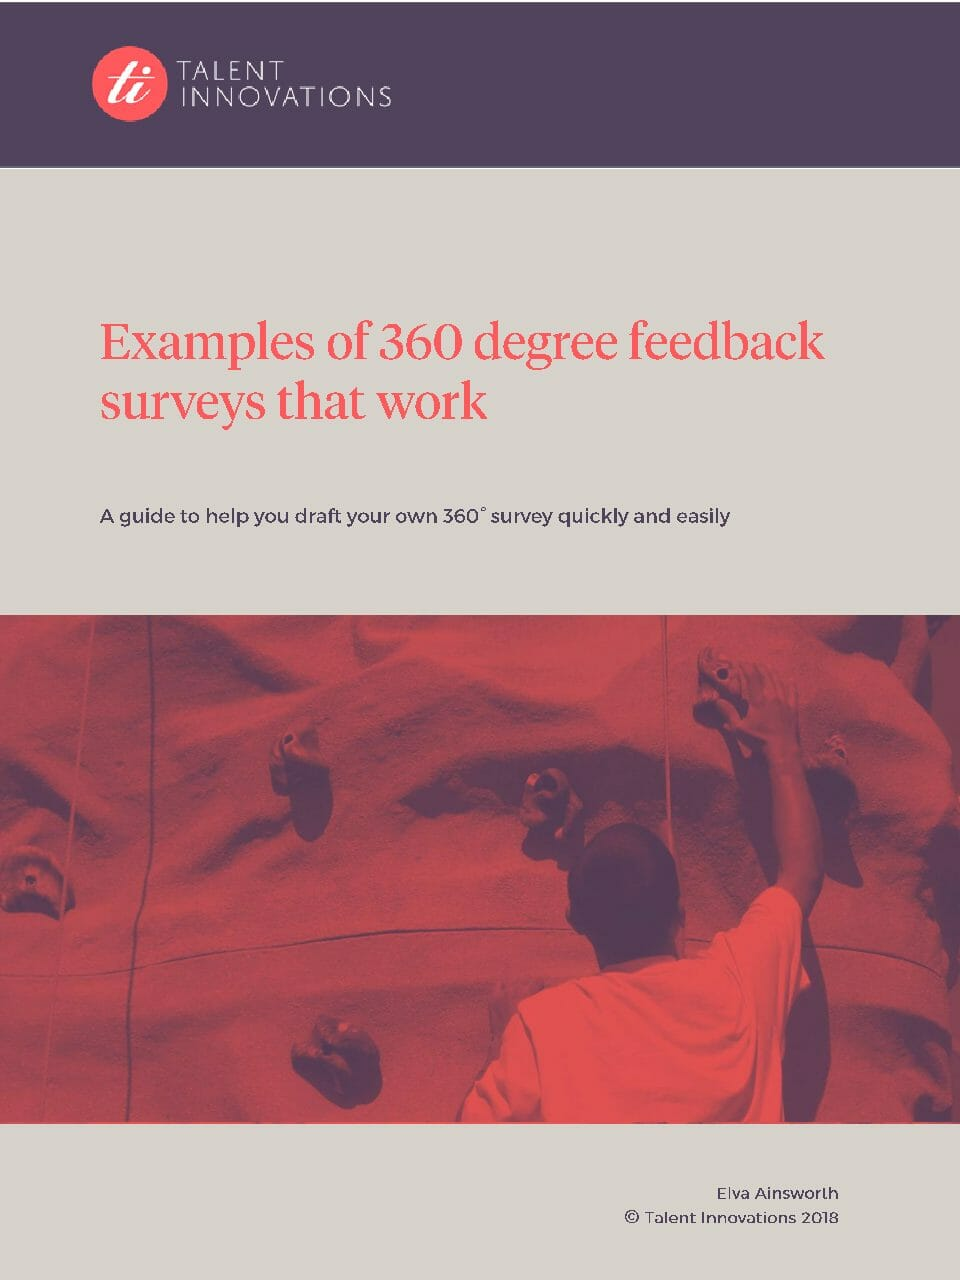 360 Guide 3 – Examples of 360 degree feedback surveys that work